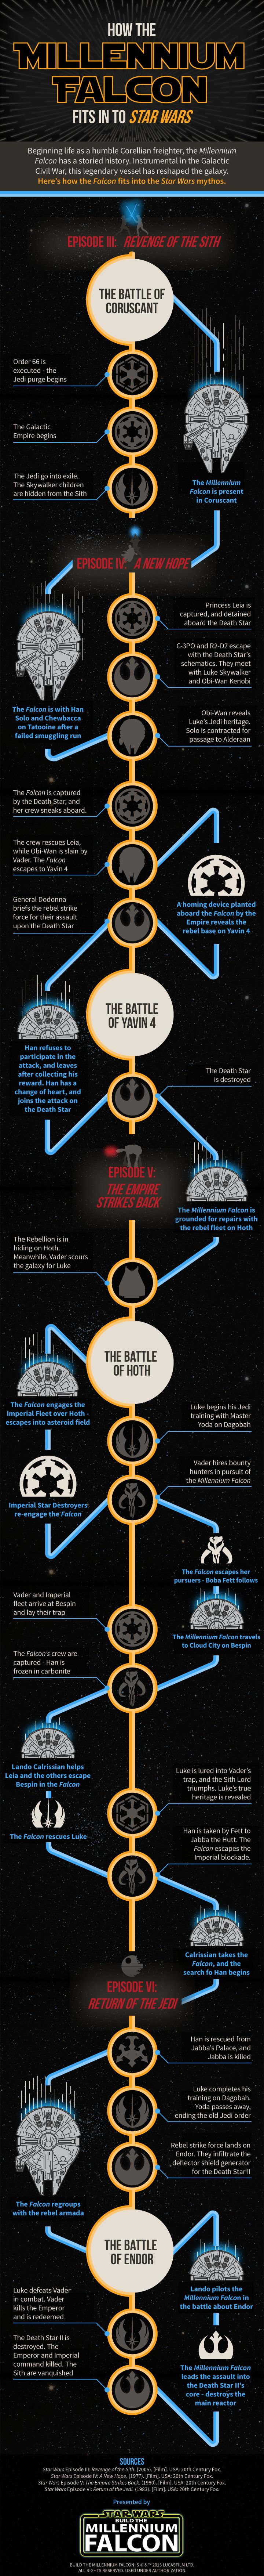 Infographic: How The Millennium Falcon Fits In To STAR WARS